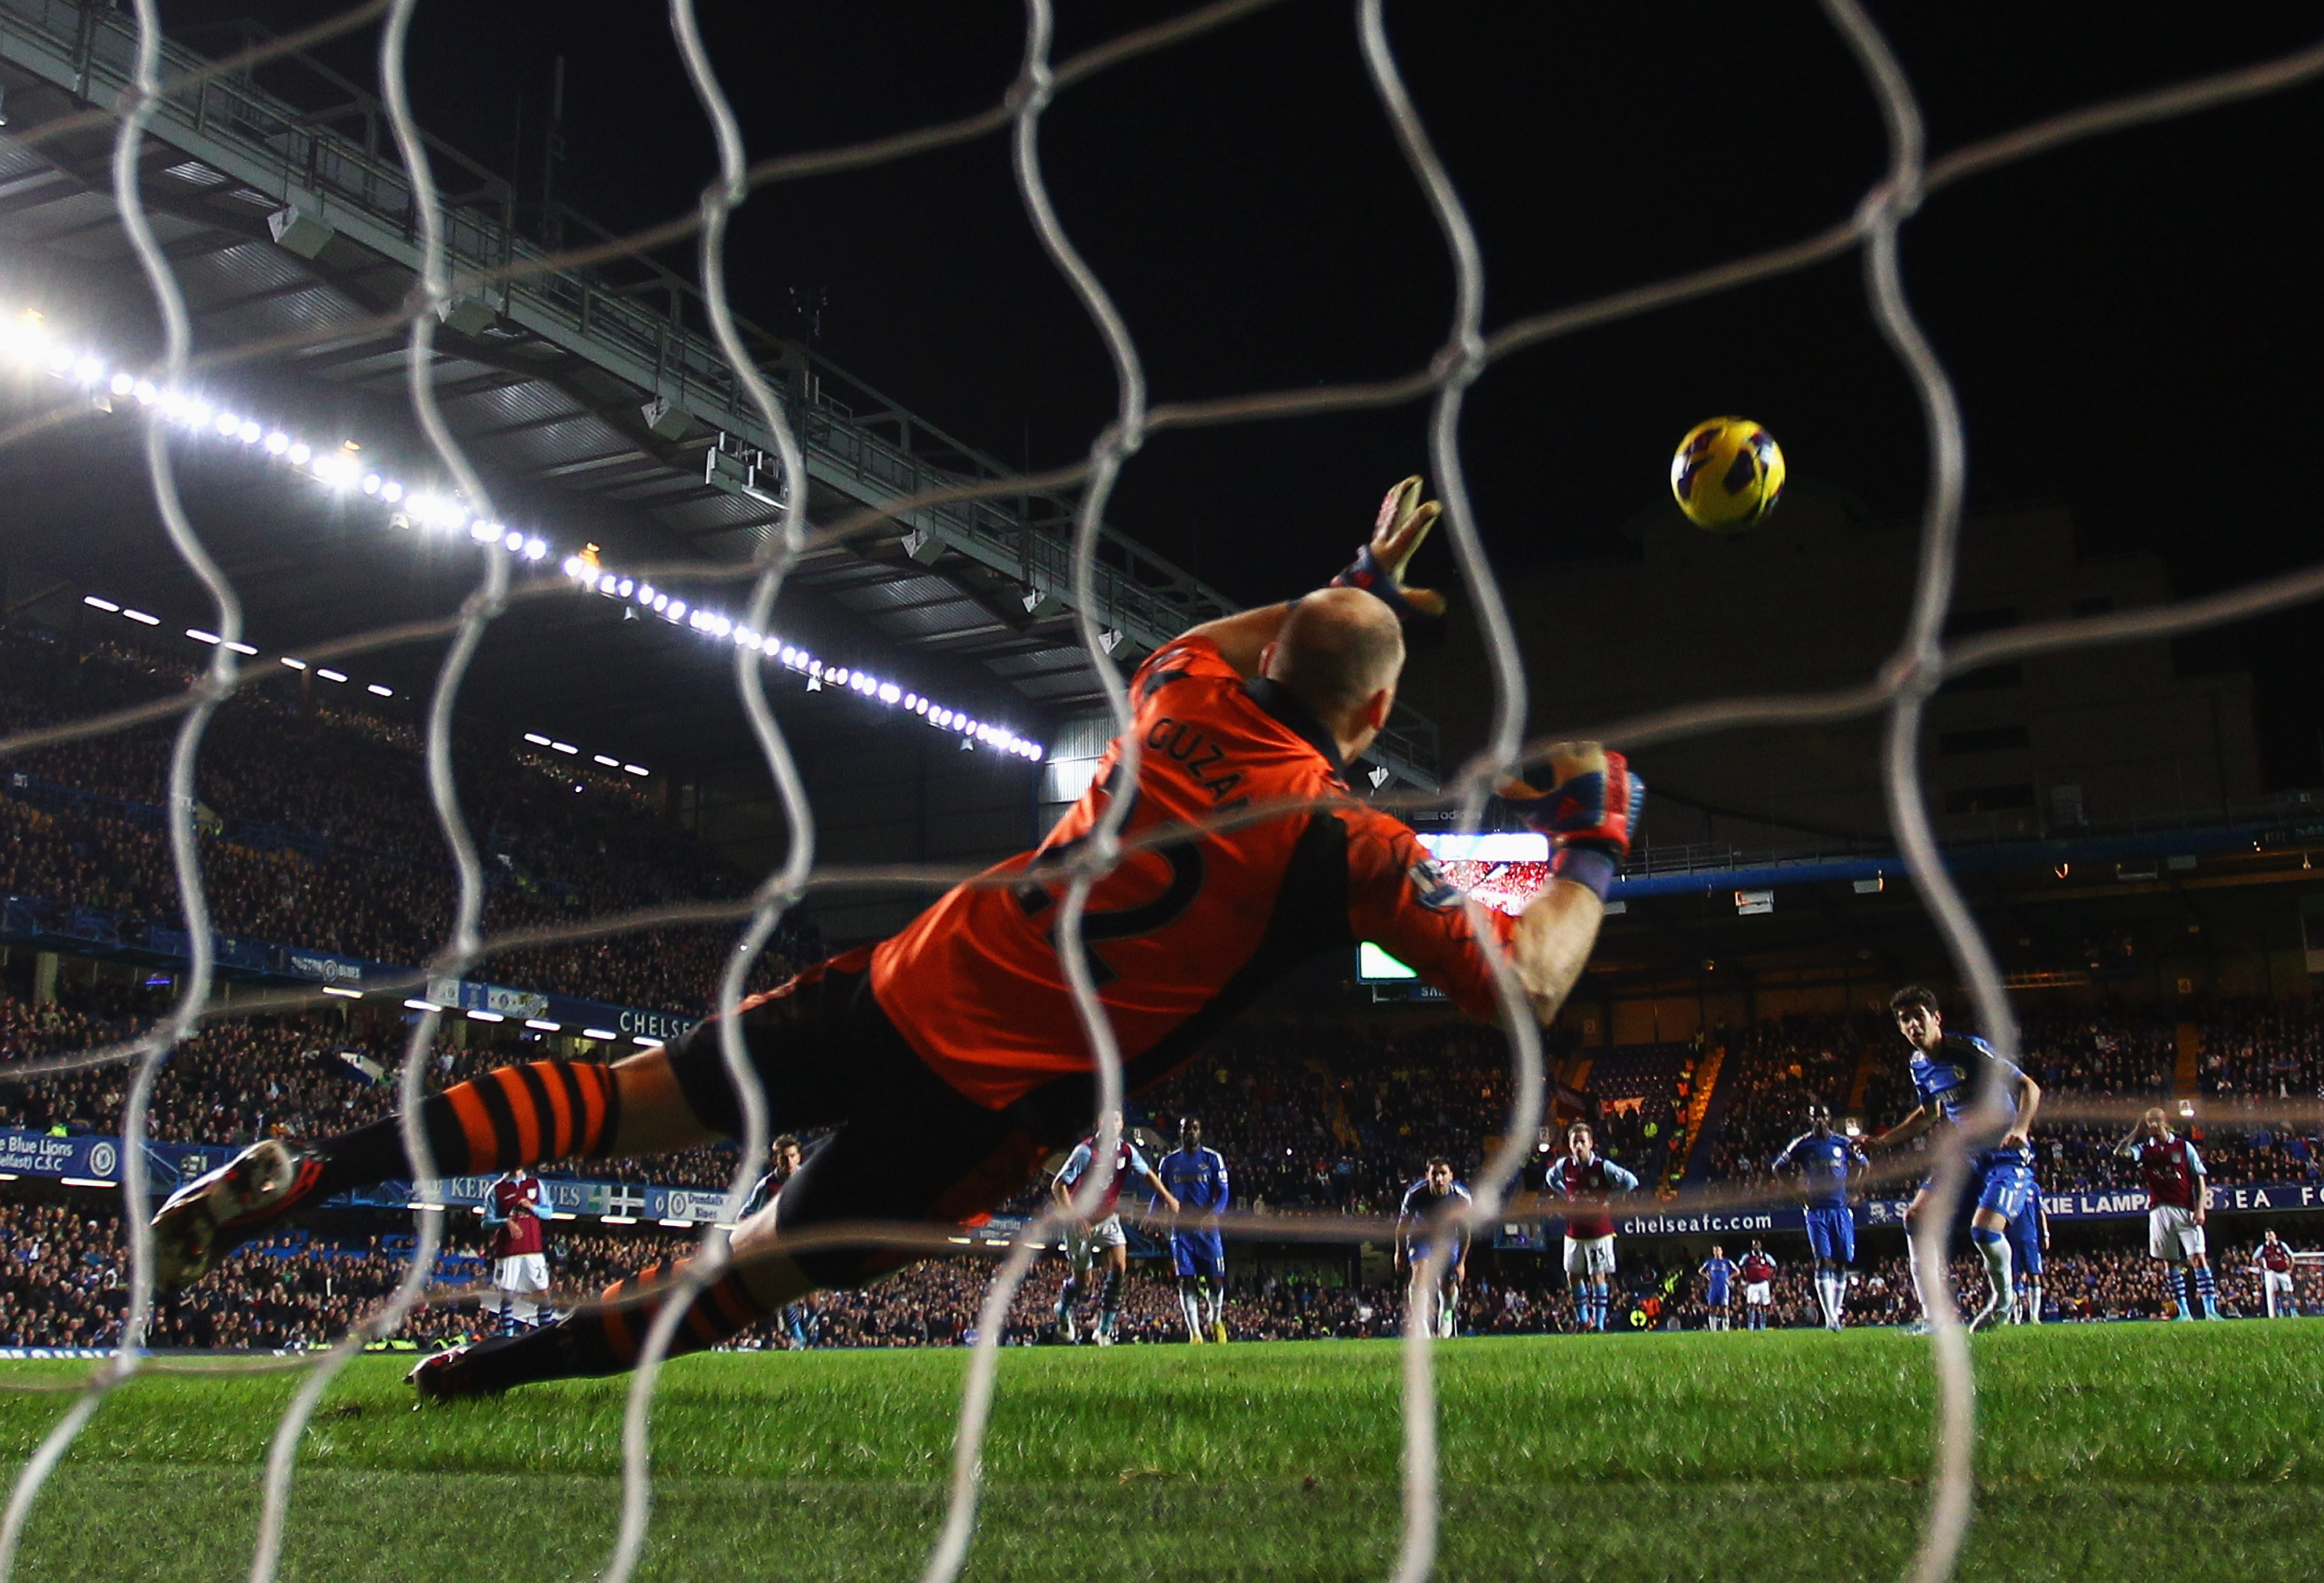 Chelsea could do us a solid by doing some more of this against Aston Villa this weekend.